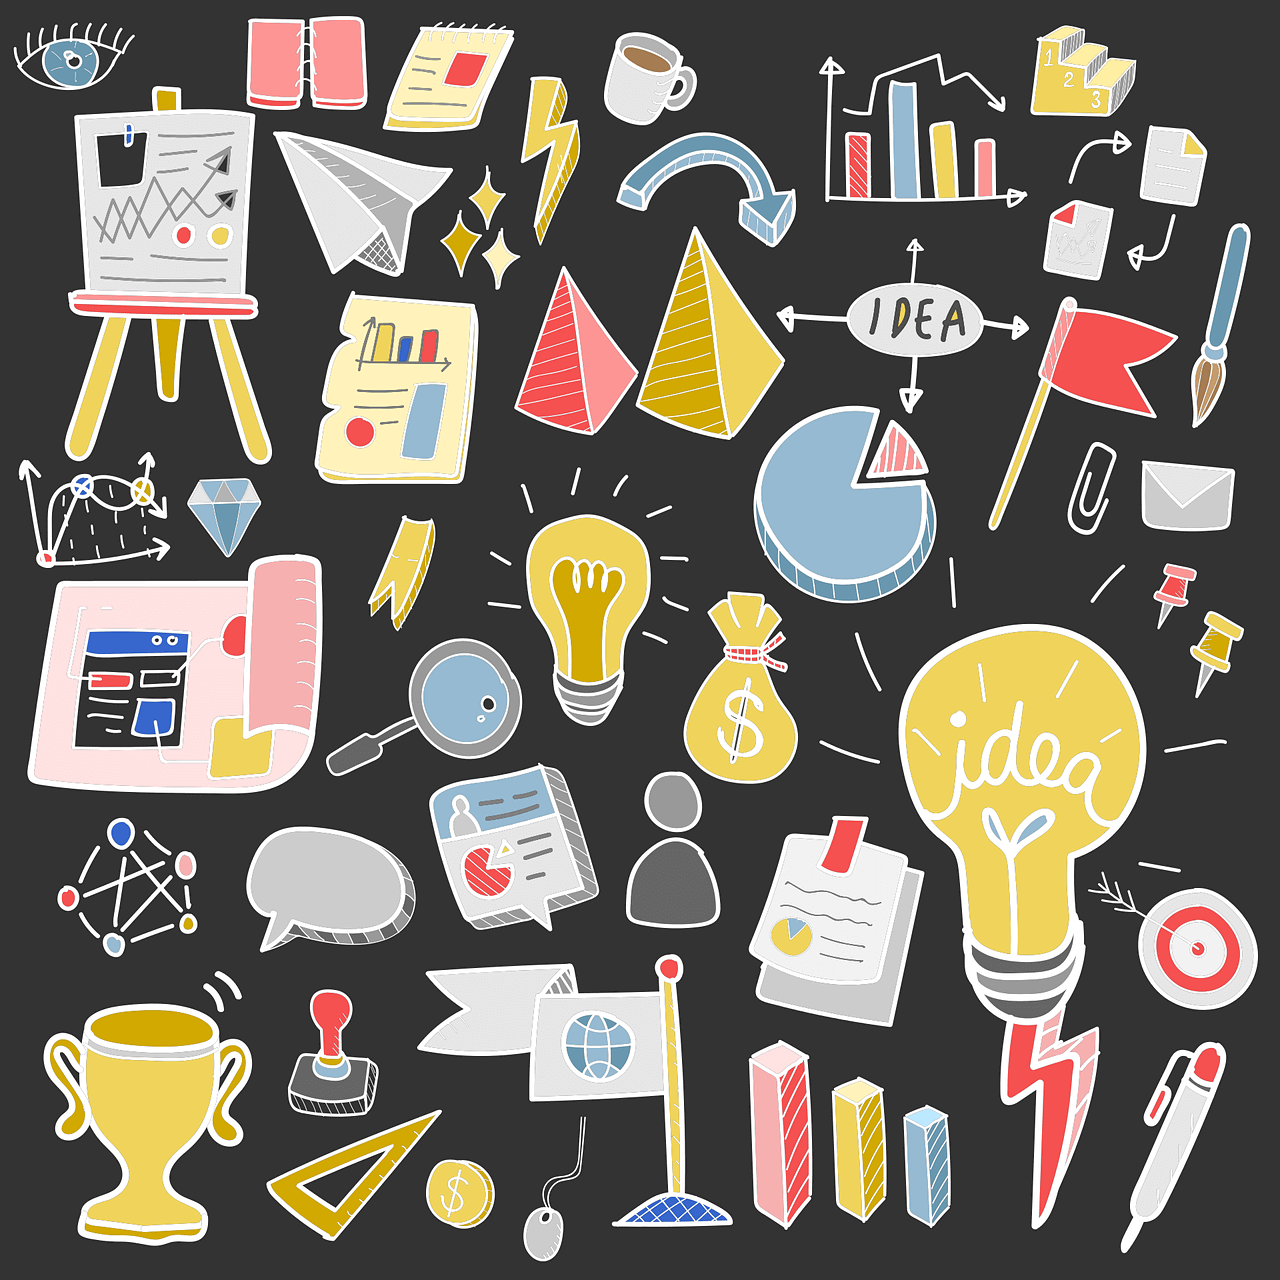 Illustrations of several tools and resources for Content marketing along with a symbolic representation of results